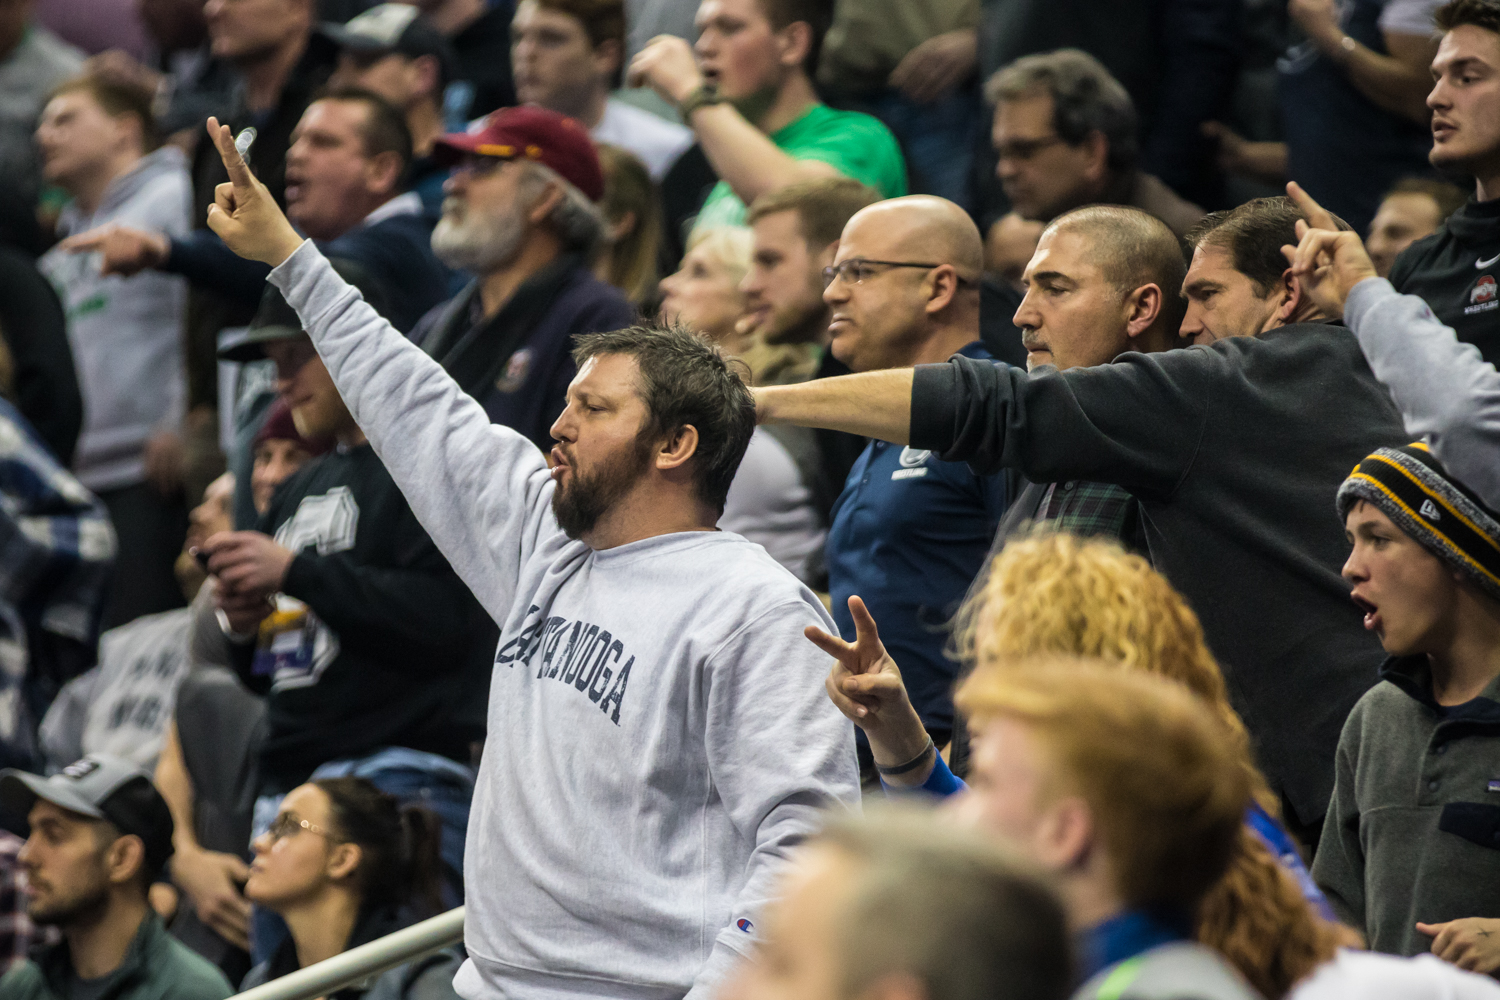 Penn+State+fans+yell+for+a+takedown+during+the+second+session+of+the+2019+NCAA+D1+Wrestling+Championships+at+PPG+Paints+Arena+in+Pittsburgh%2C+PA+on+Thursday%2C+March+21%2C+2019.